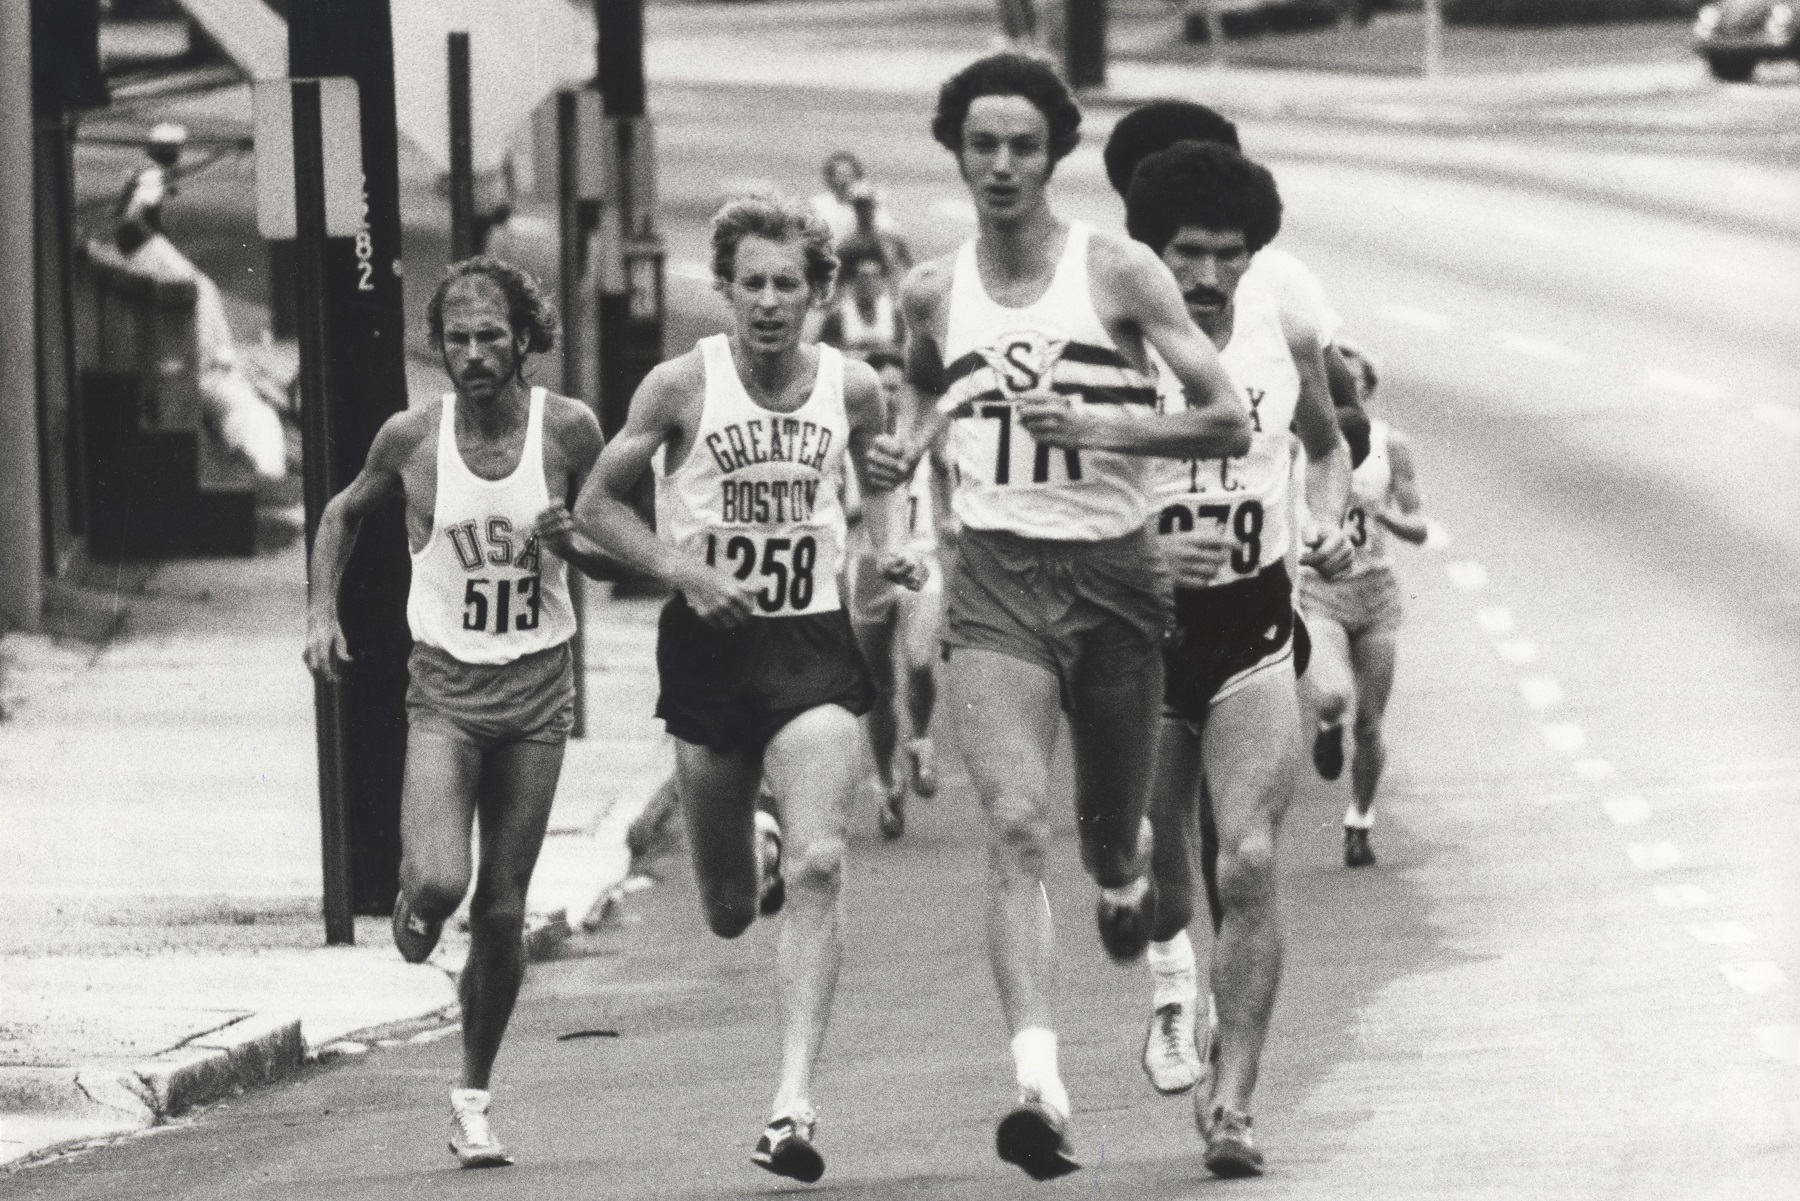 From left to right: Jeff Galloway, Bill Rodgers and Don Kardong race in the 1976 Peachtree